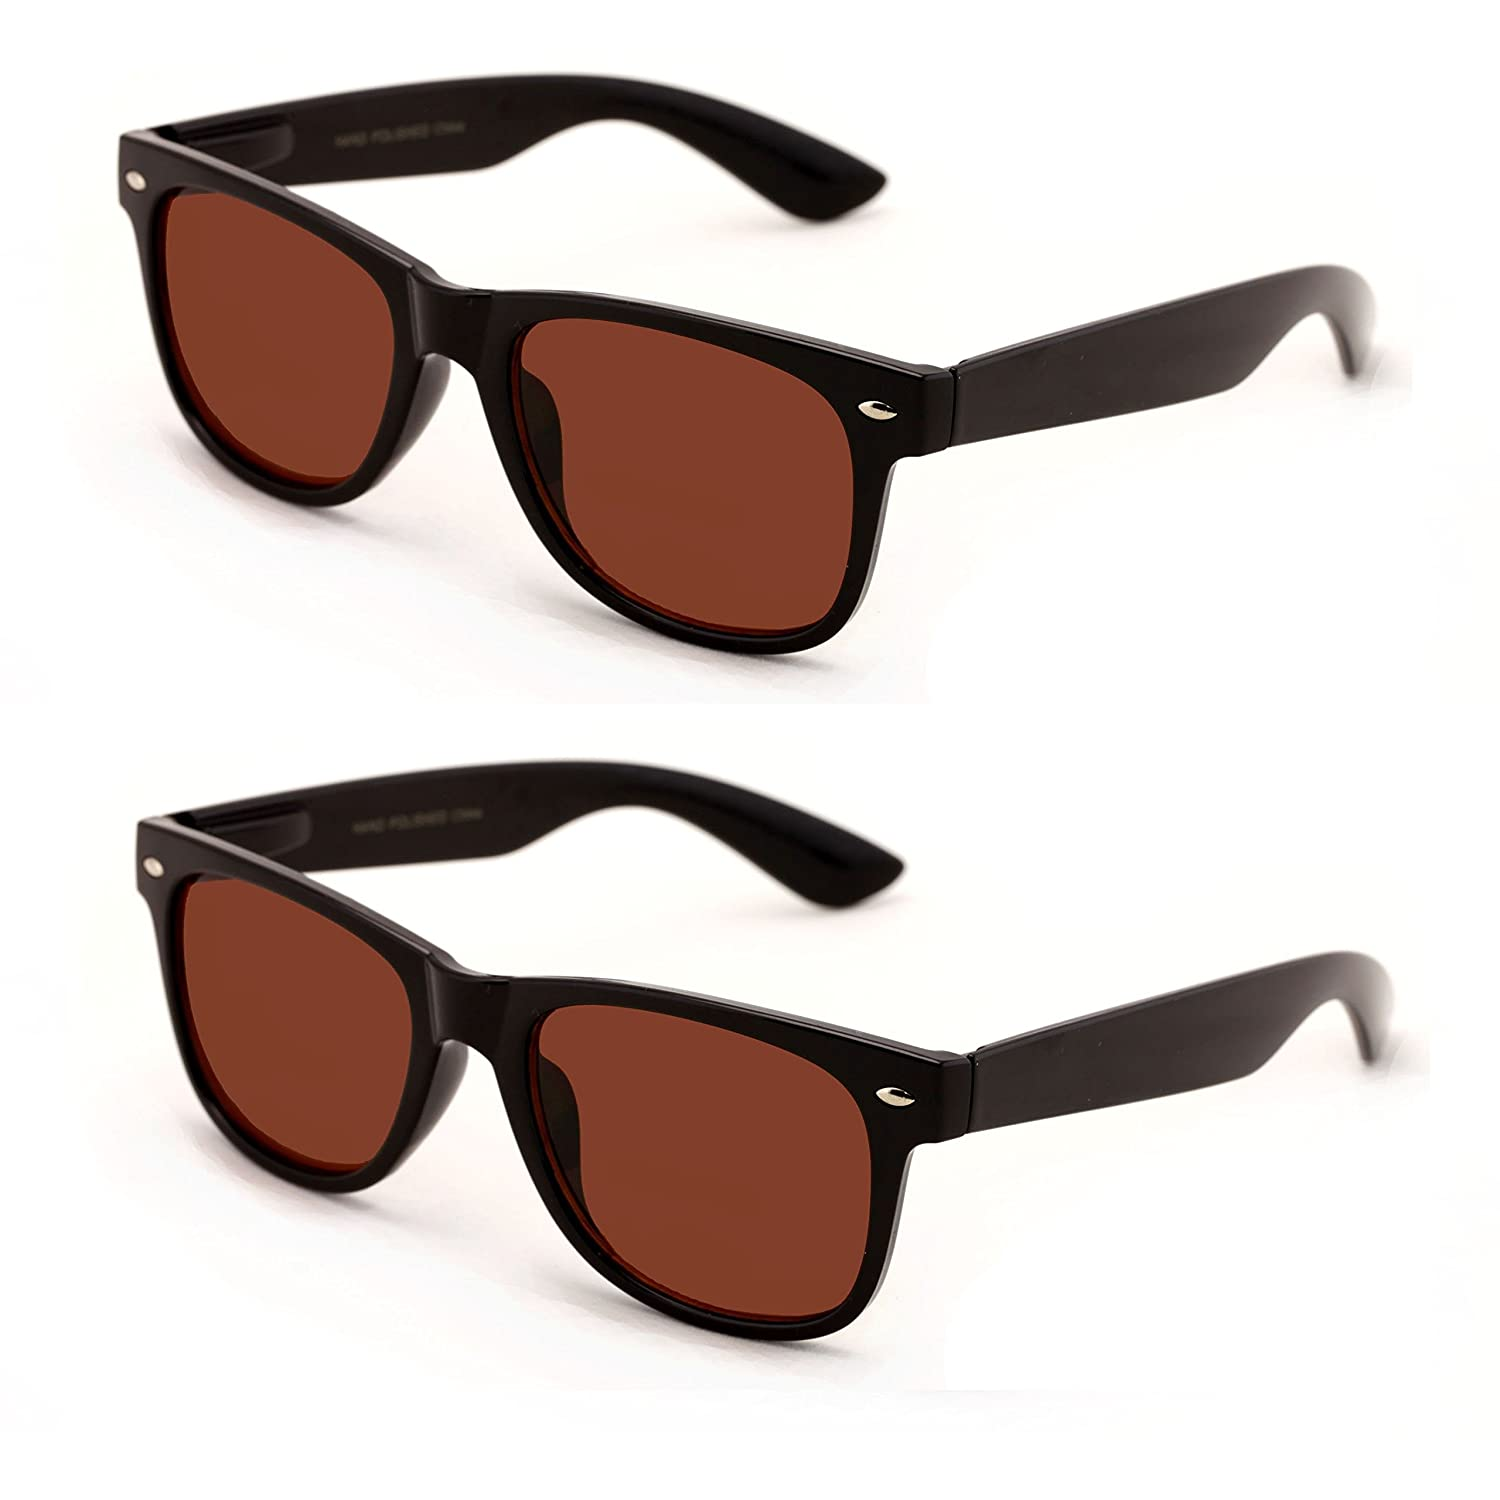 V.W.E Classic Outdoor Reading Sunglasses - Comfortable Stylish Simple Readers Rx Magnification - Not Bifocal +1.00) VW-RD-W2-SR